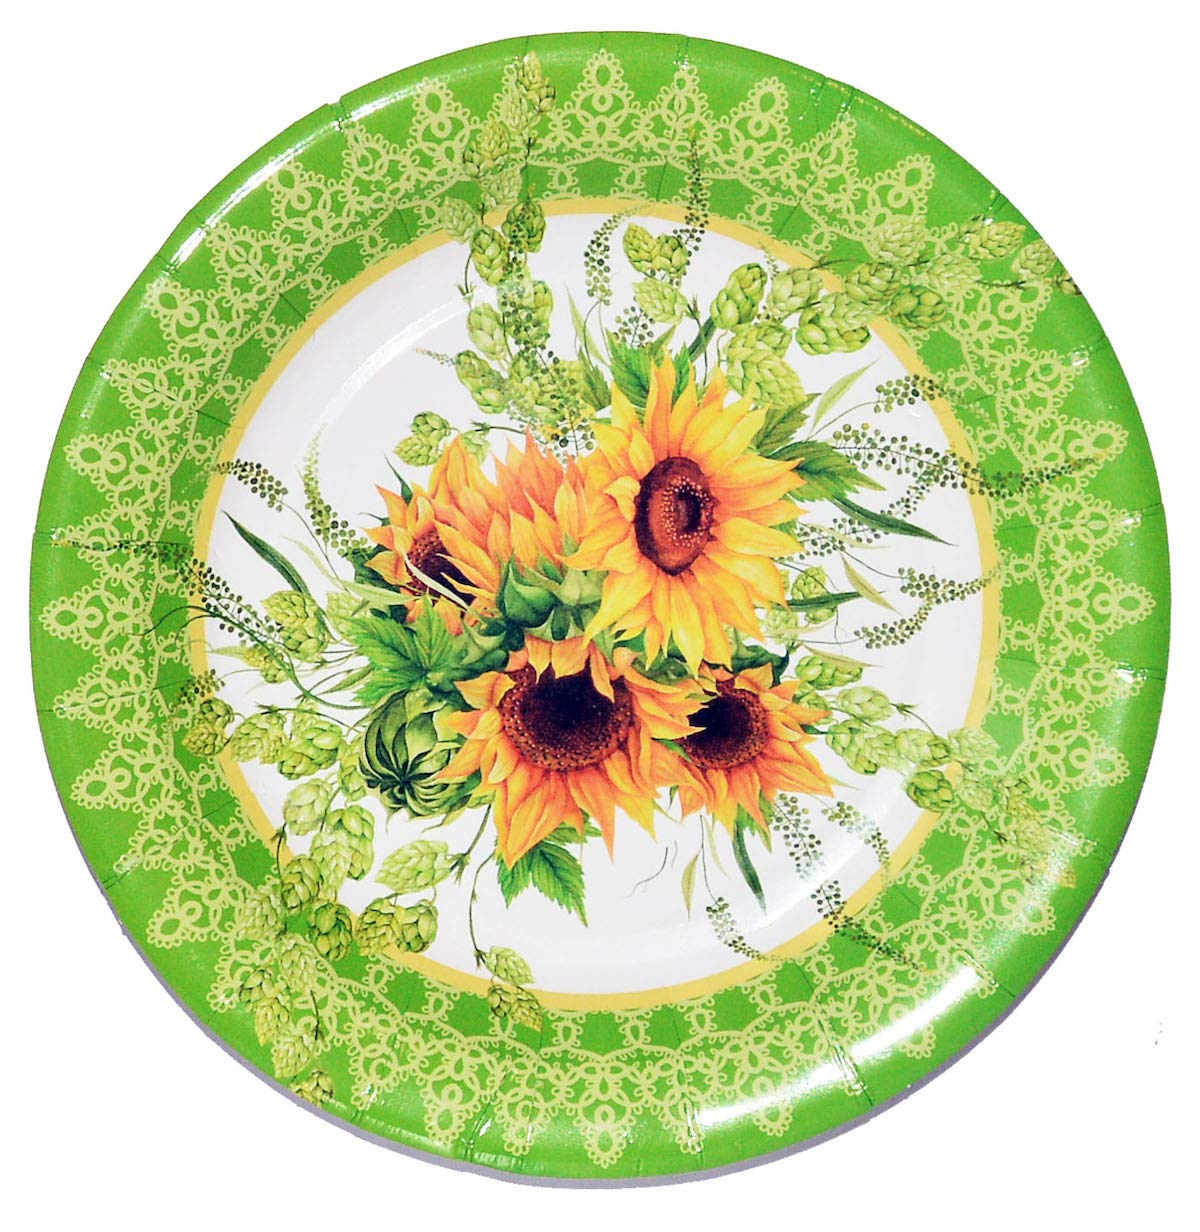 40 Sunflower Paper Plates, Decorative Party Plates Sunflower Party Decoration for Sunflower Wedding Birthday by ArtPaperWonders